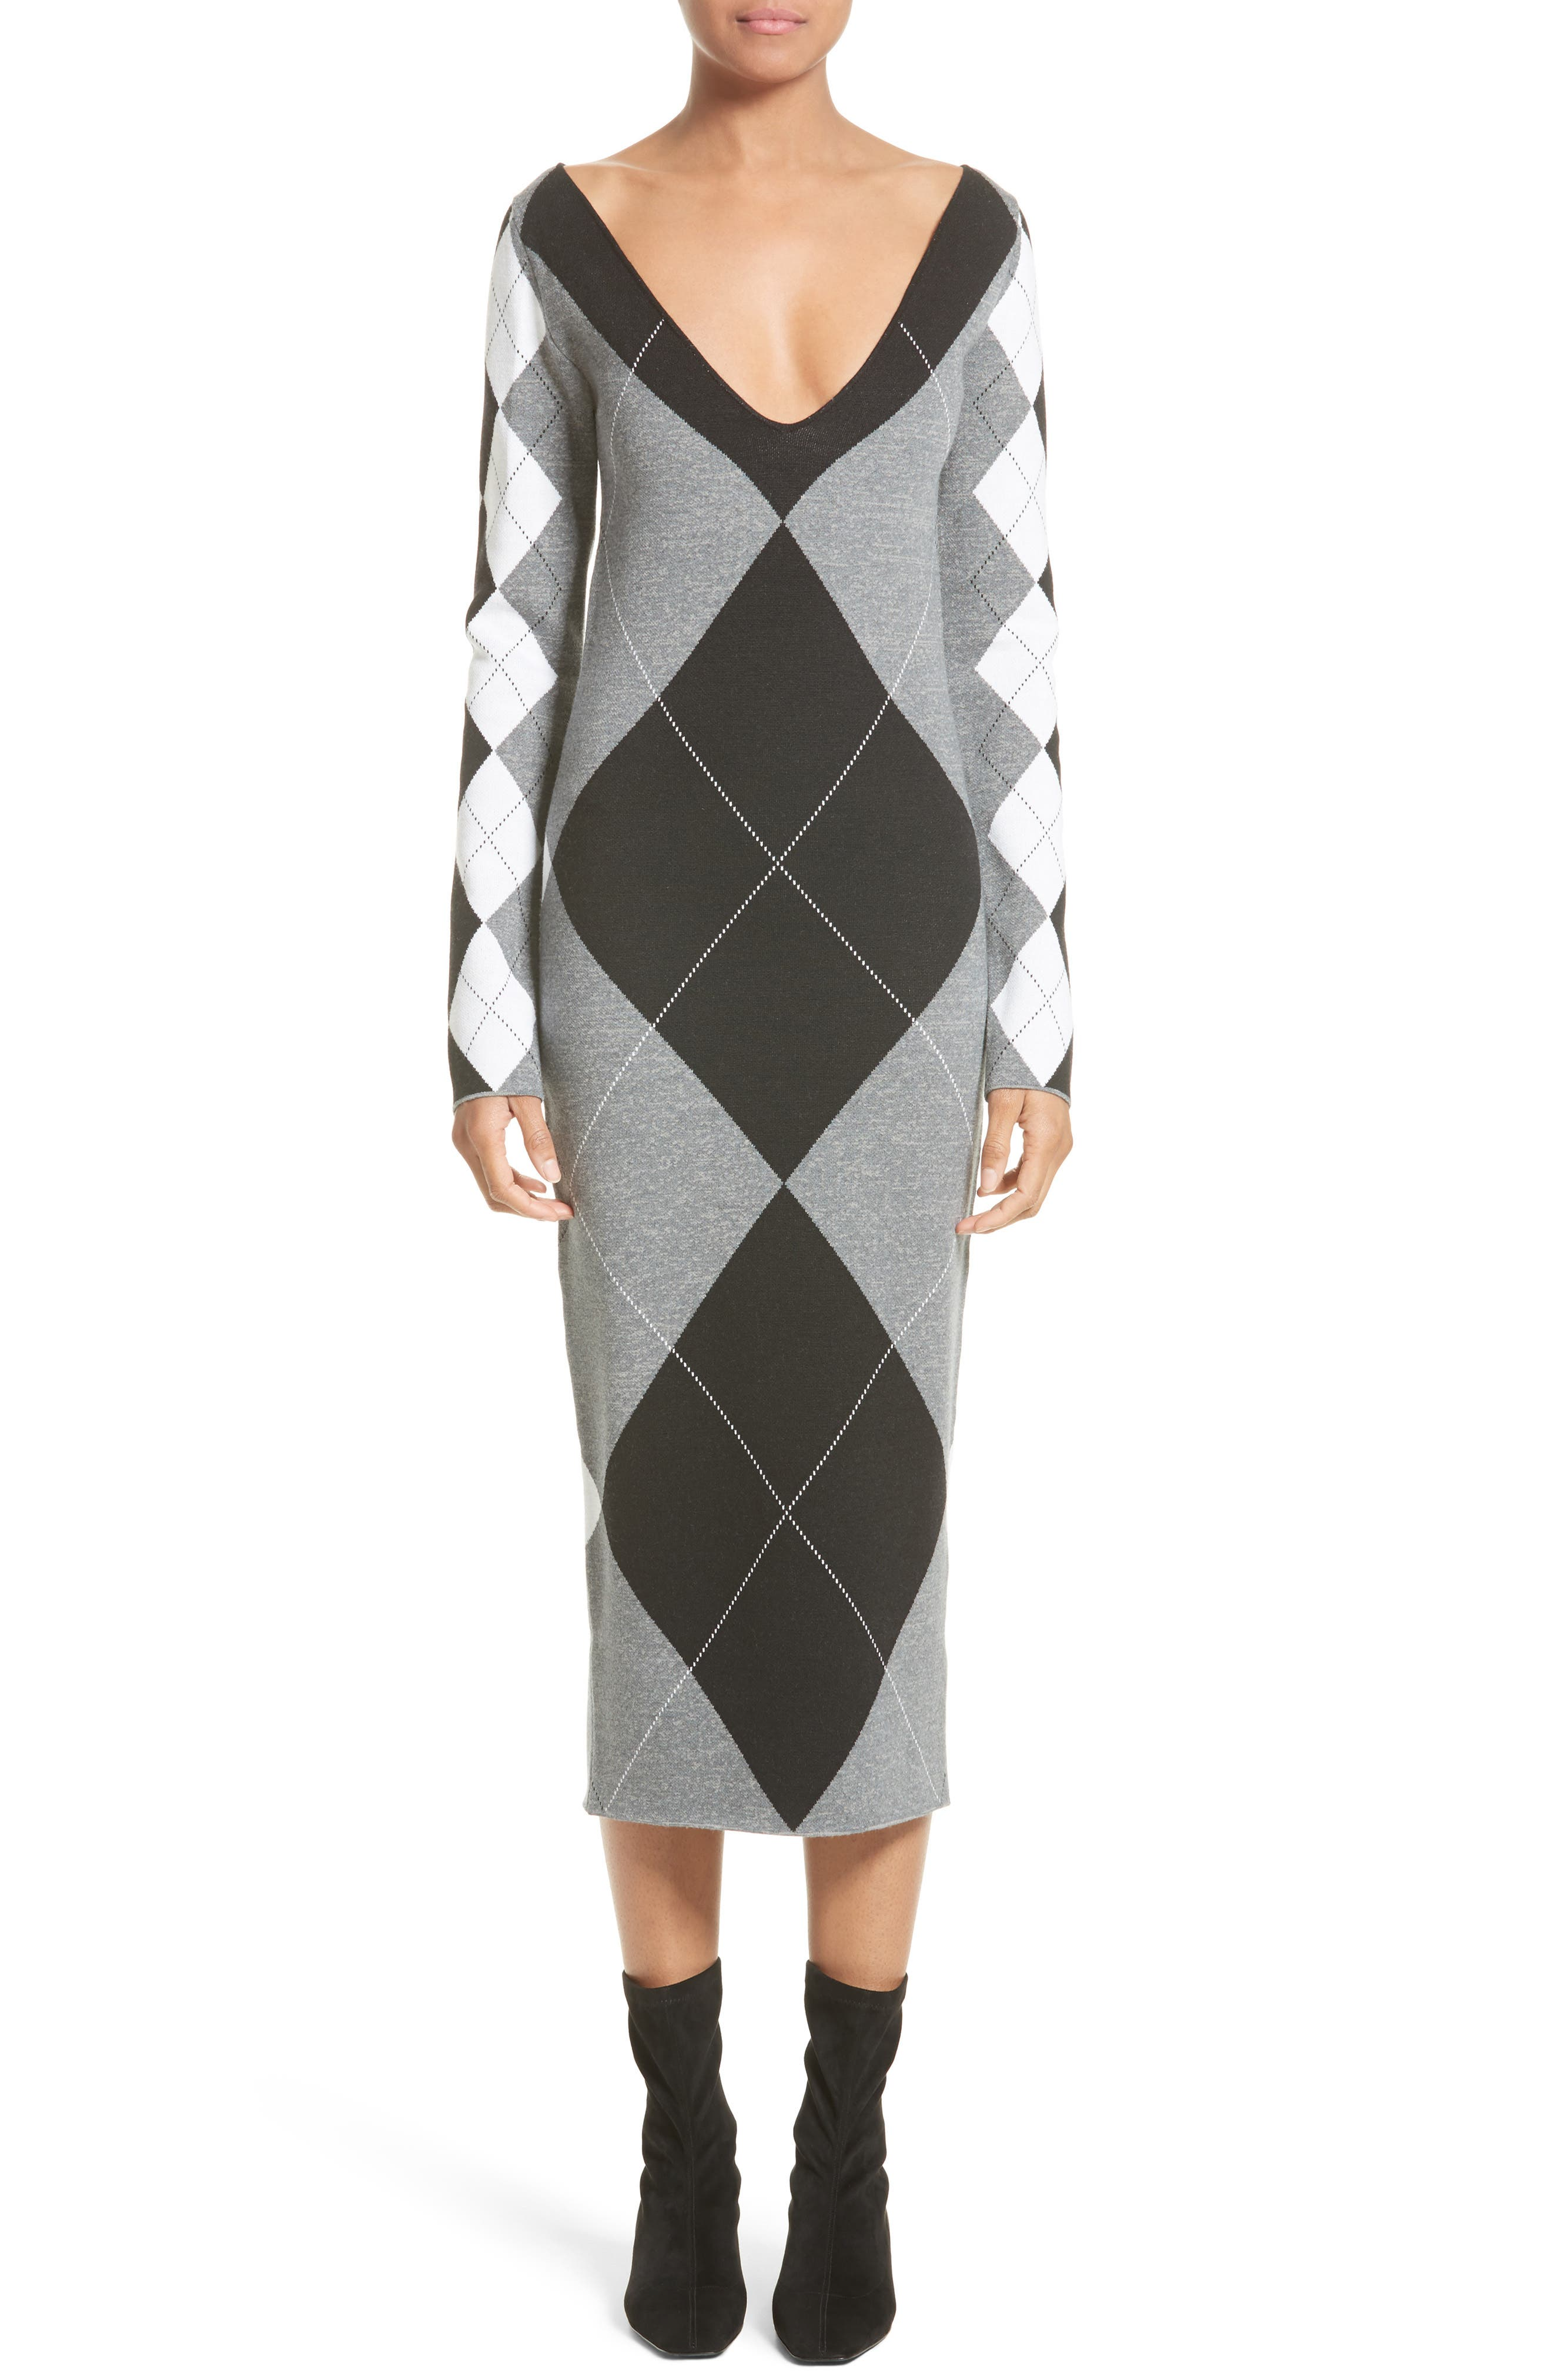 Argyle Sweater Dress,                         Main,                         color, Charcoal/ Black/ Ivory